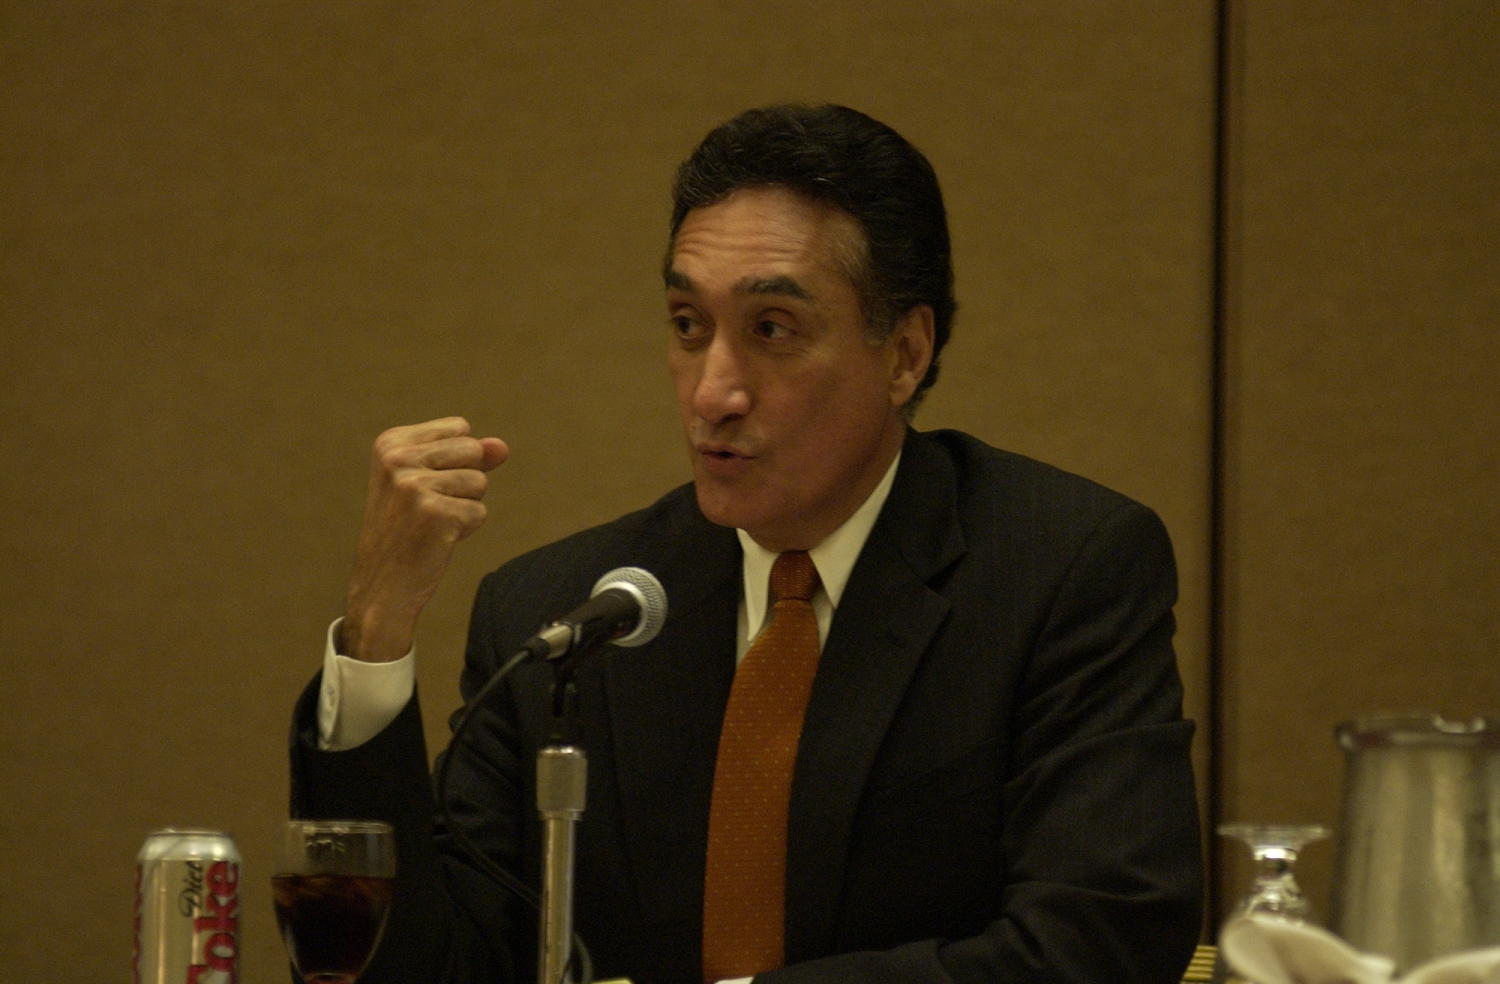 [Guest speaker at TDNA conference], Photograph of an unidentified guest speaker attending the 2004 Texas Daily News Association annual conference held in Corpus Christi. The guest is seated at a table and talking into a microphone addressing the conference attendees. A diet coke is opened and poured into a glass in front of him.,